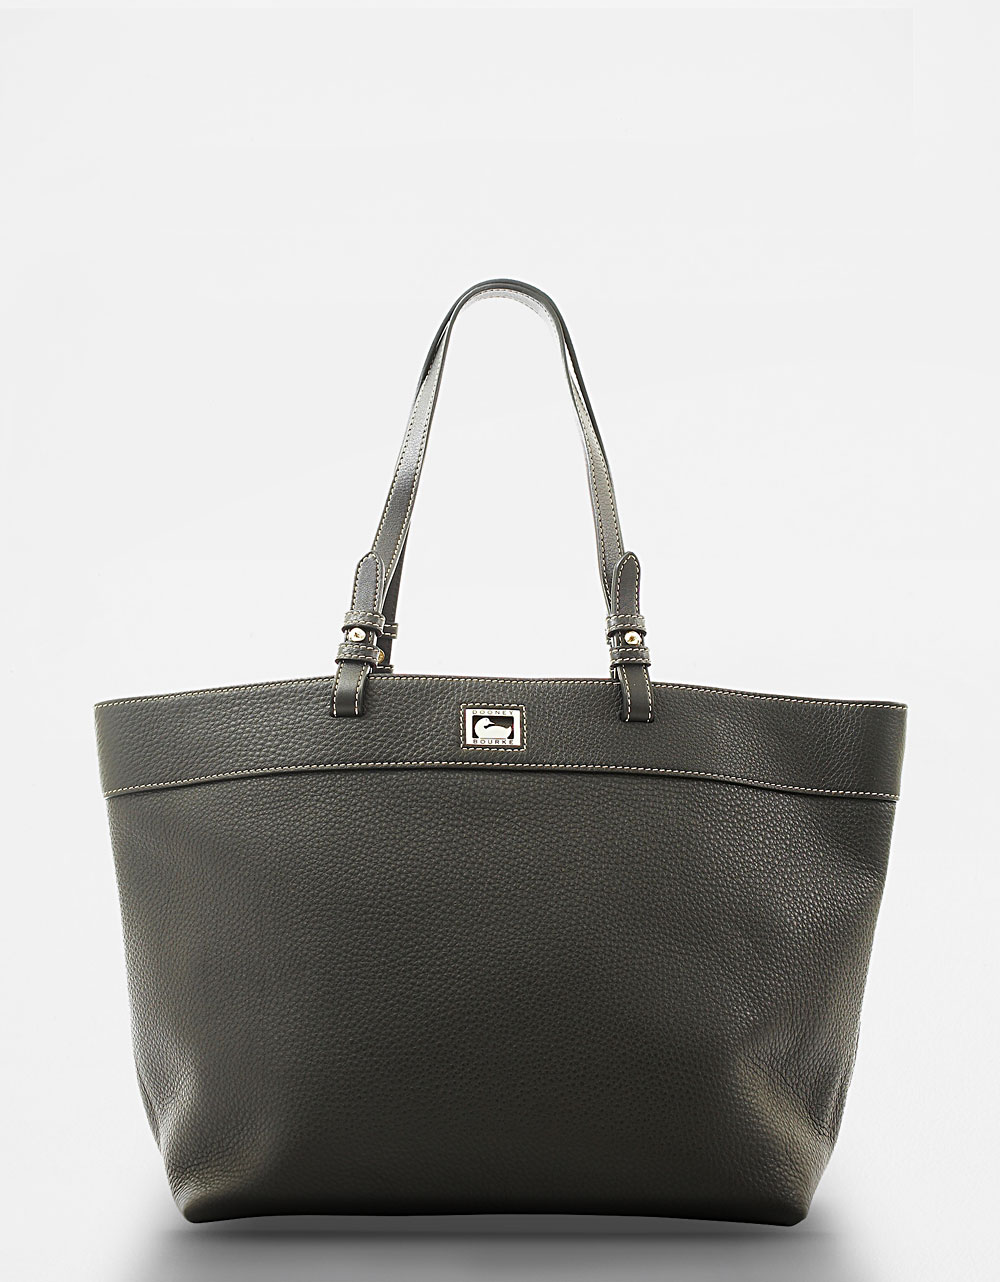 dooney bourke dillen black large leather tote bag in